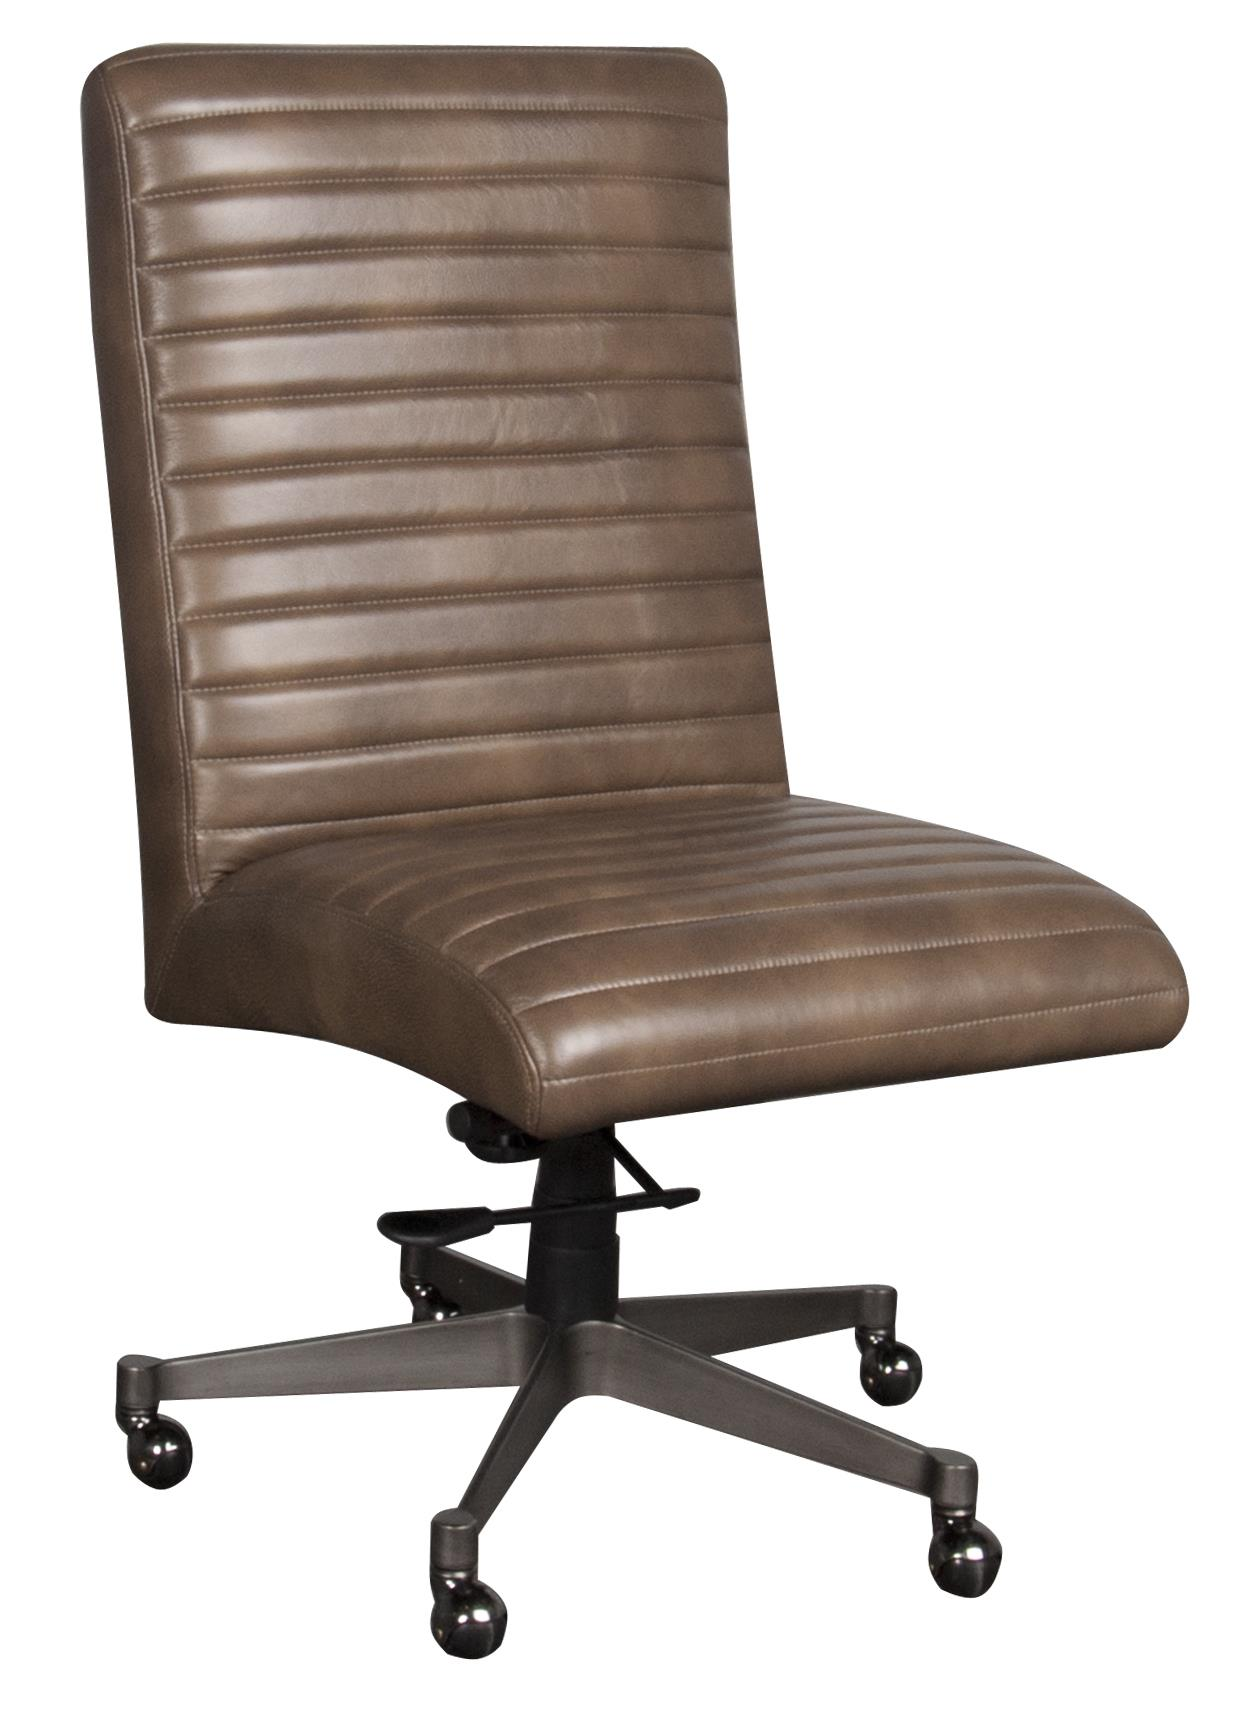 Morris Home Furnishings Westminster Westminster Task Chair - Item Number: 294486249